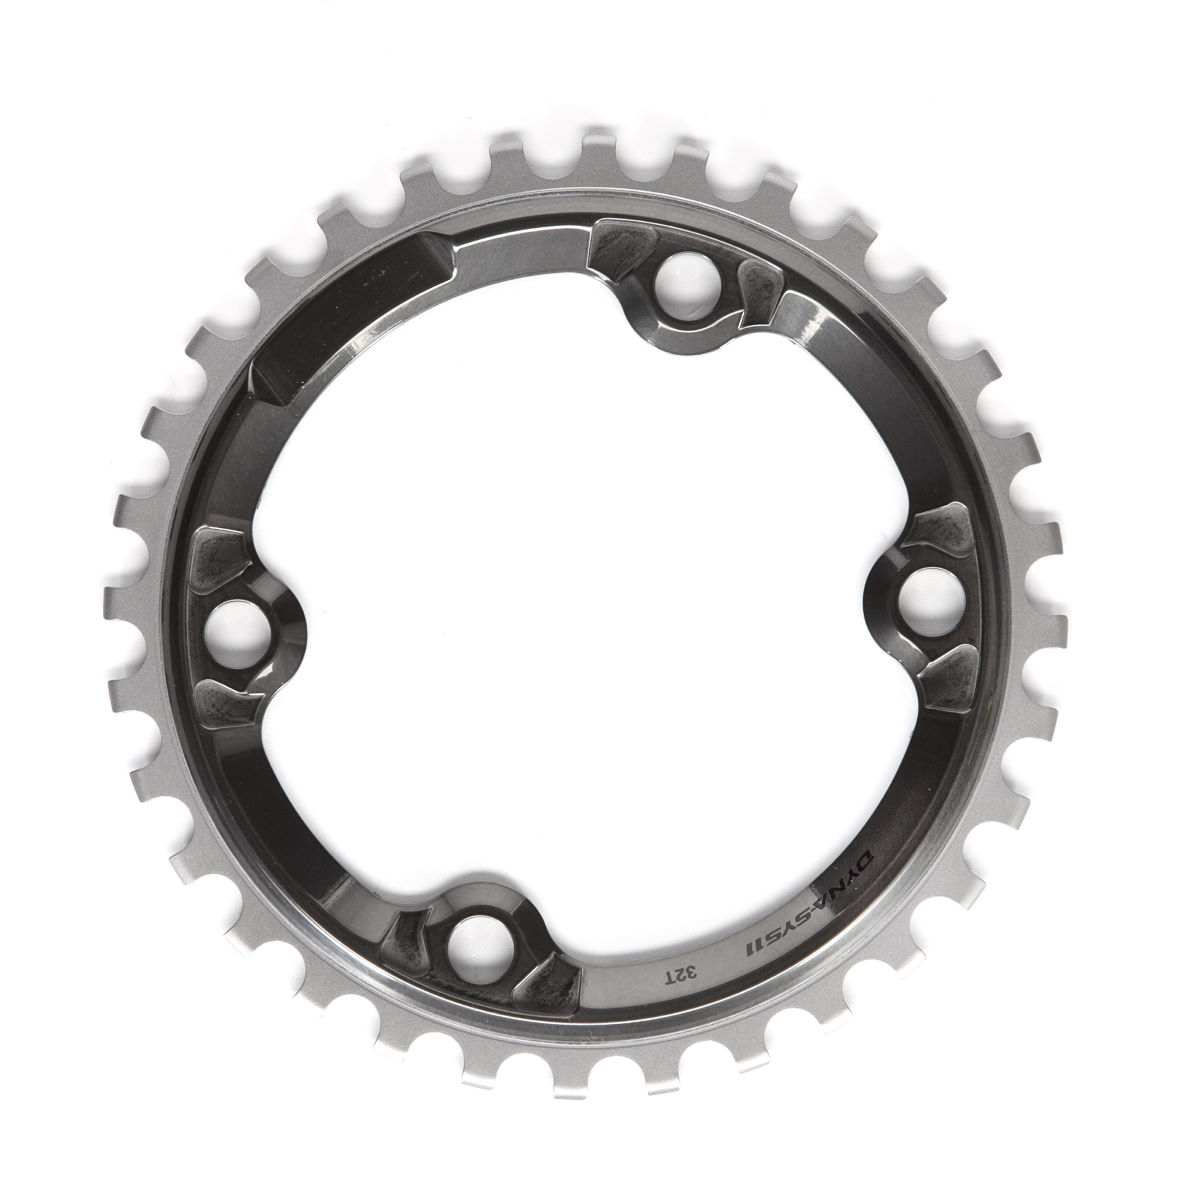 Plateau de rétention simple Shimano XTR M9000/9020 - 32T Plateaux